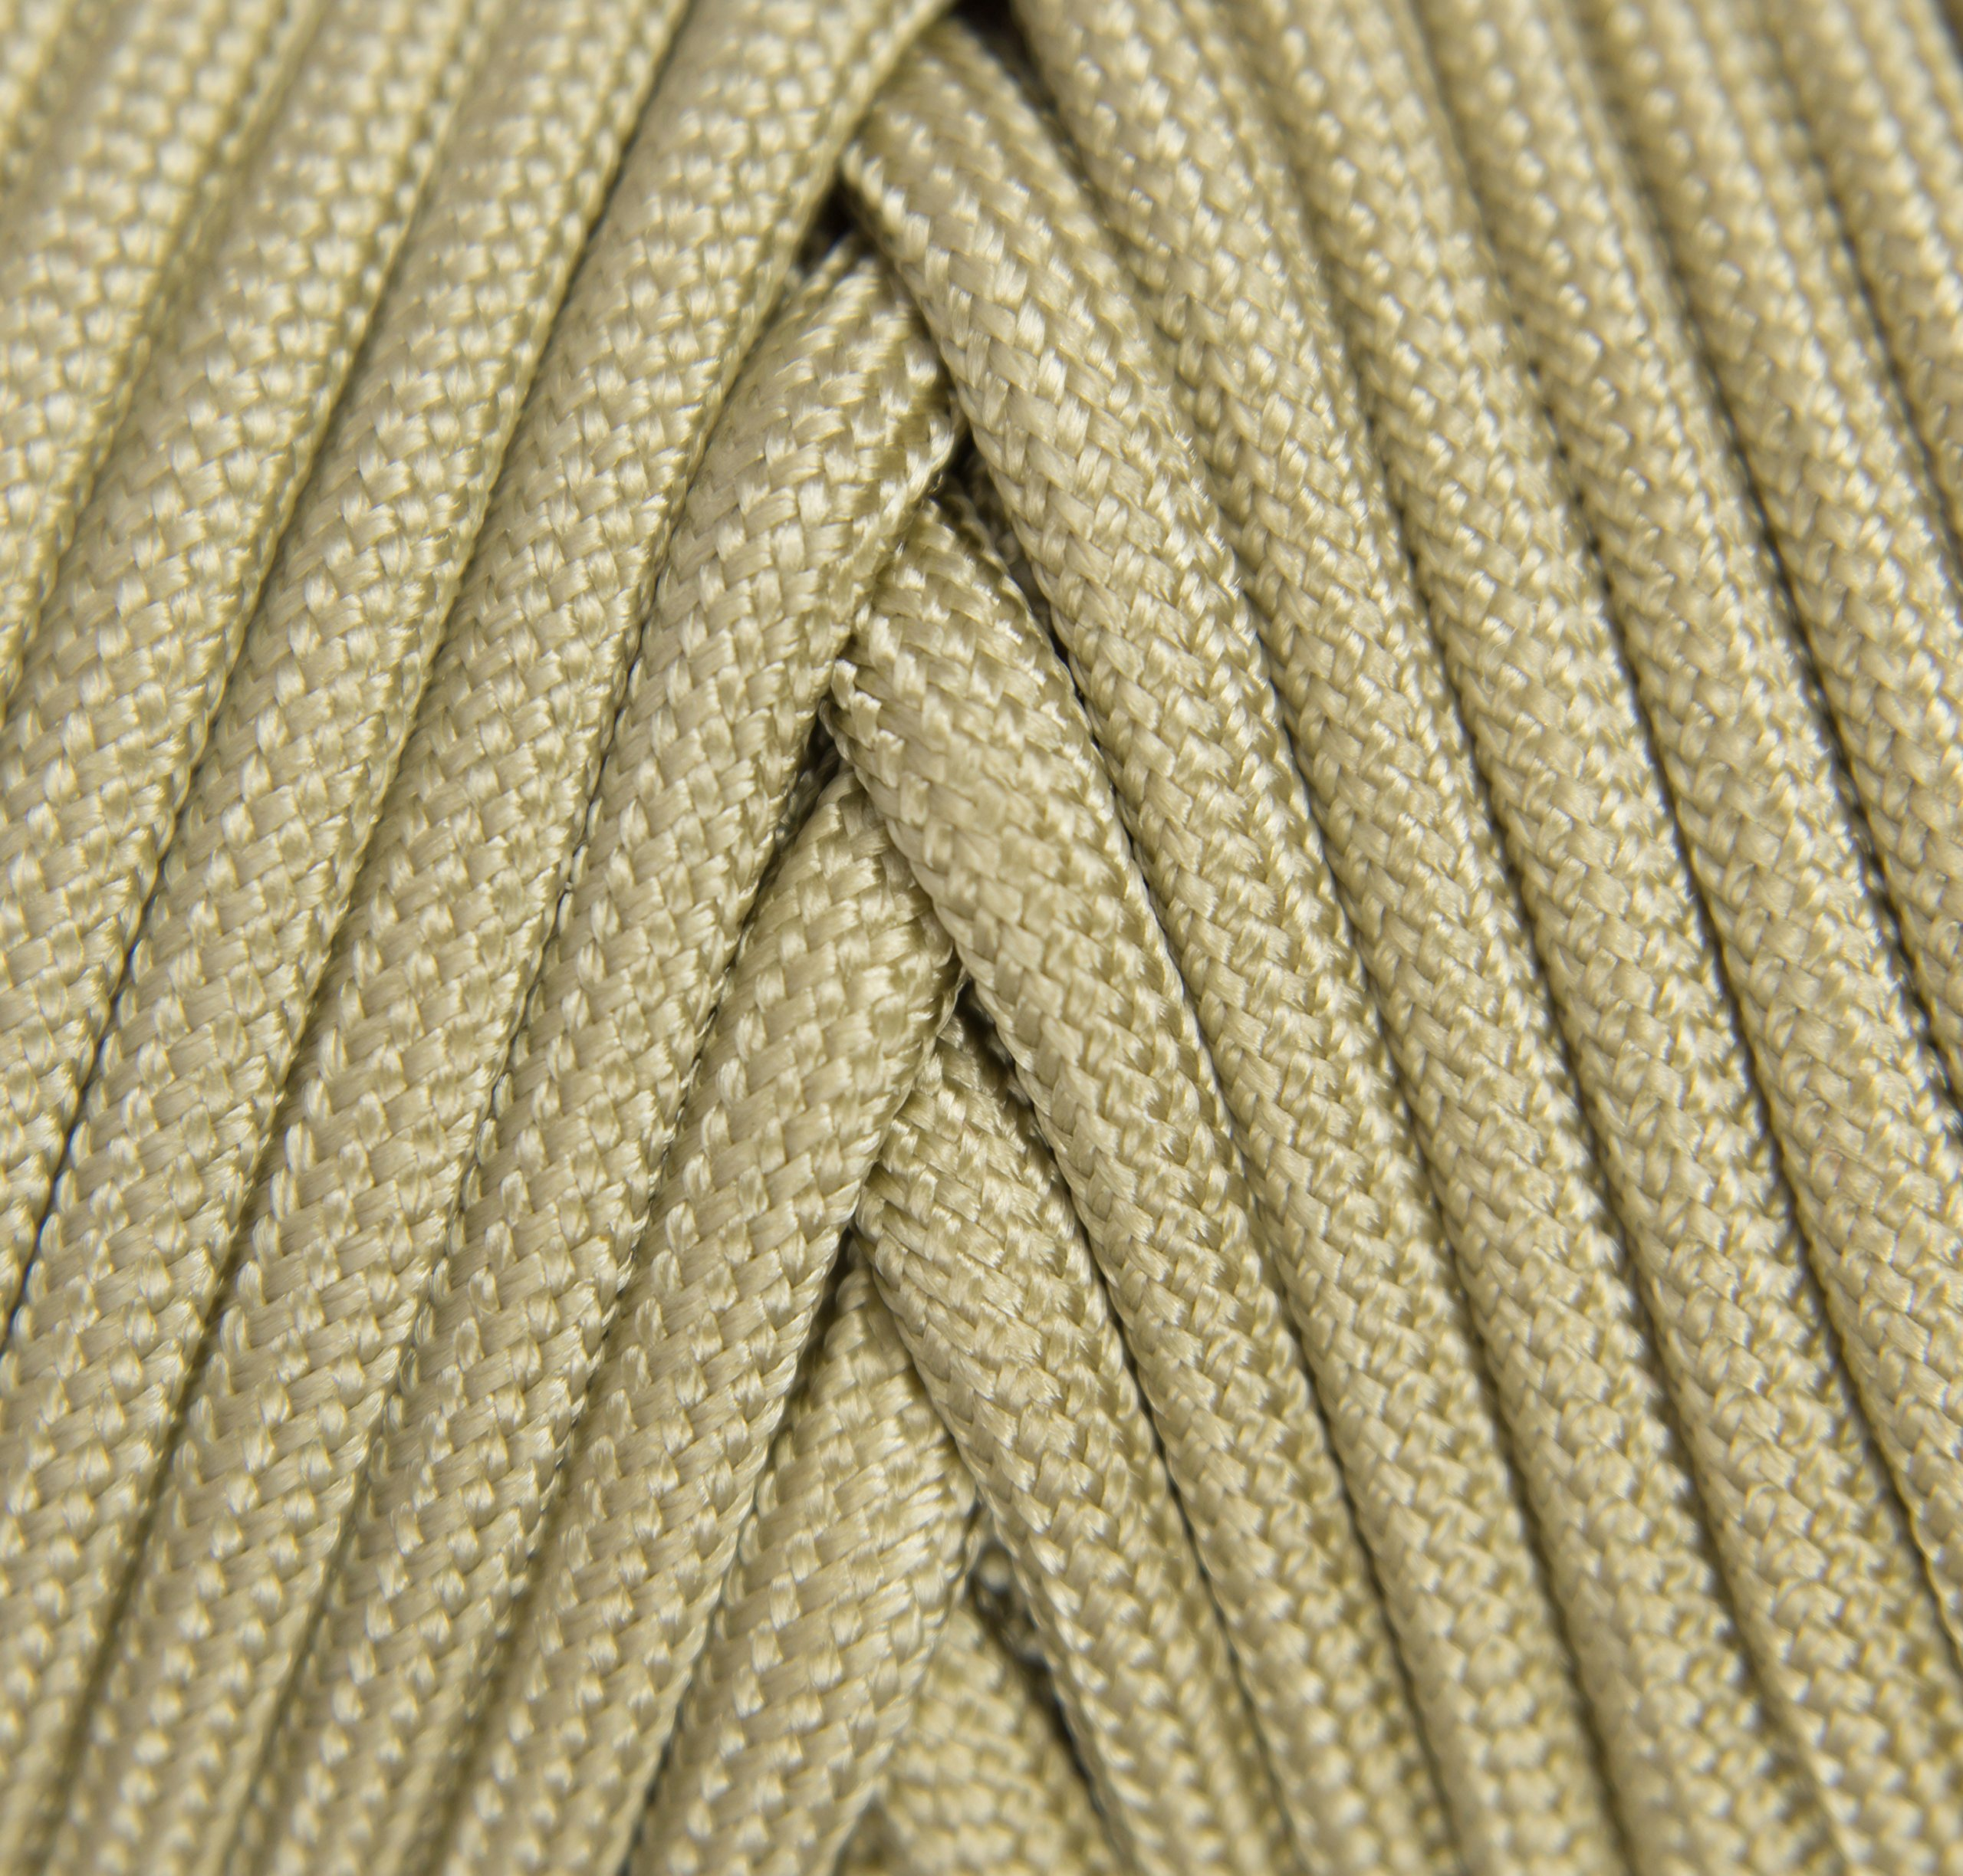 TOUGH-GRID 750lb Buckskin (Desert Sand) Paracord/Parachute Cord - Genuine Mil Spec Type IV 750lb Paracord Used by The US Military (MIl-C-5040-H) - 100% Nylon - Made in The USA. 500Ft. - Buckskin by TOUGH-GRID (Image #3)